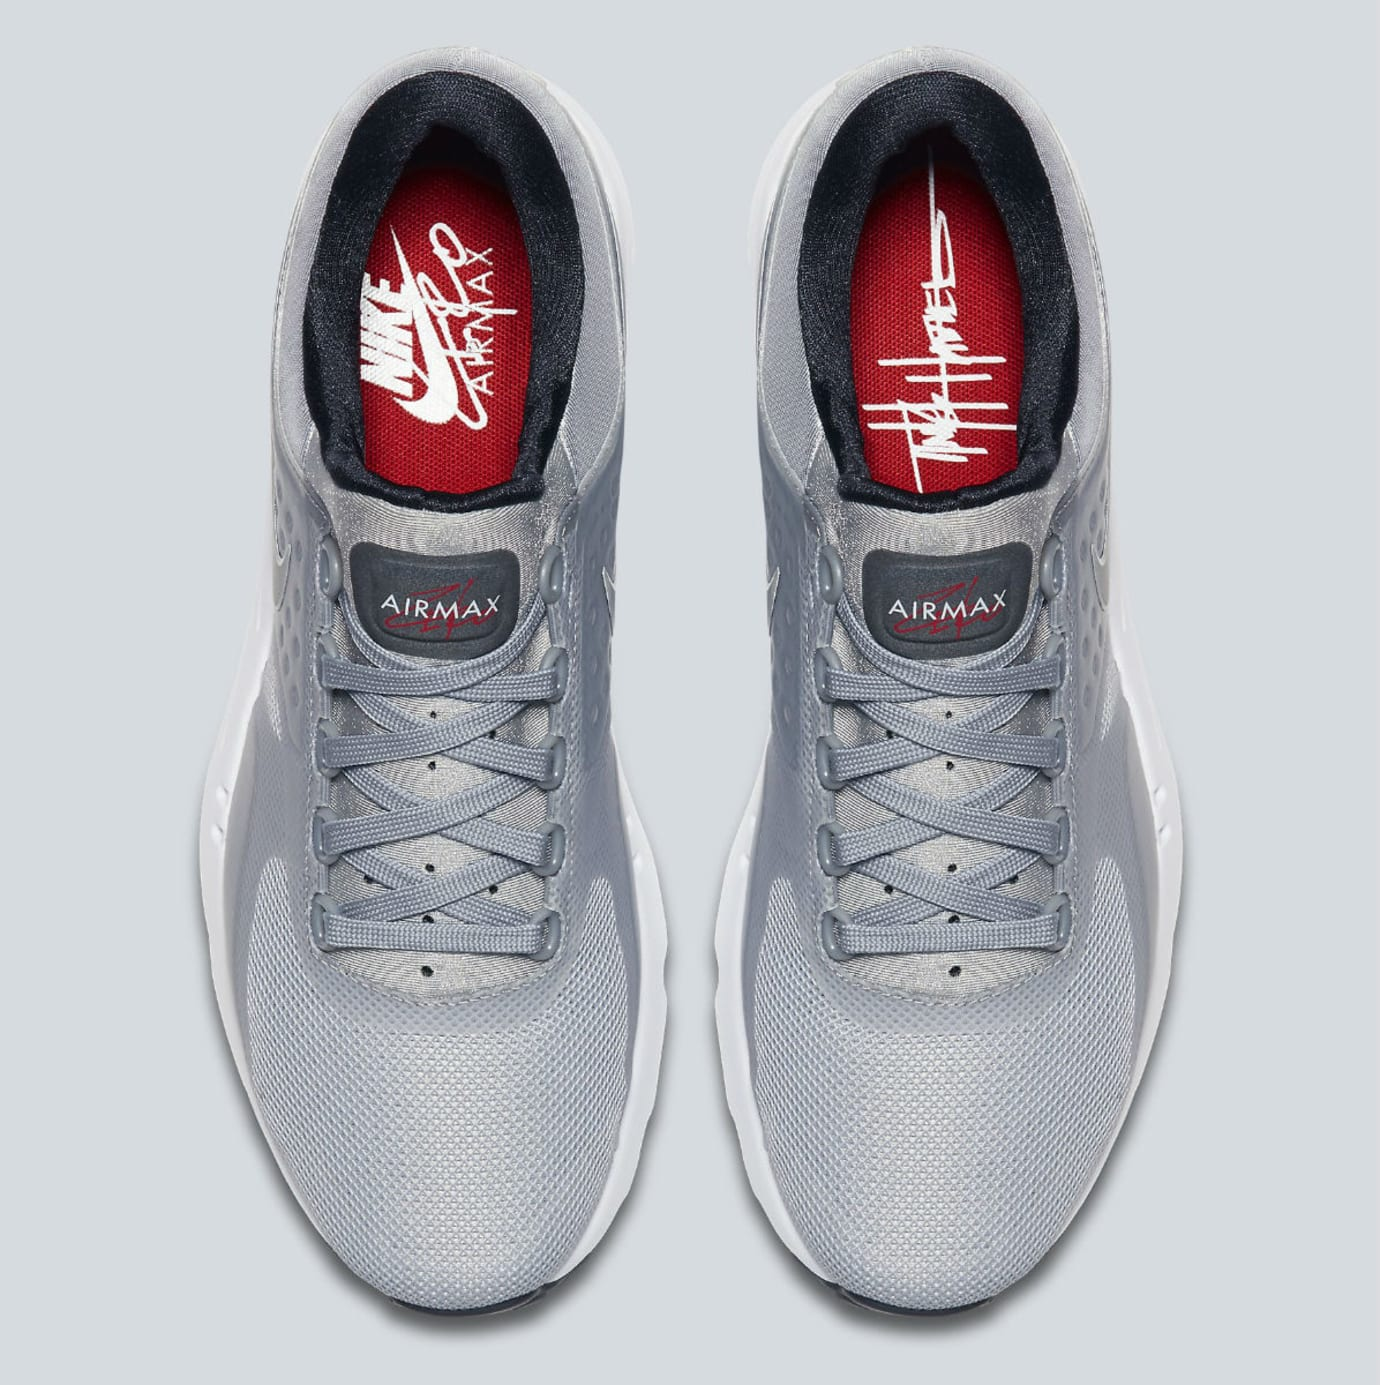 new concept c2b55 8af75 Nike Air Max Zero Silver Bullet Release Date Top 789695-002